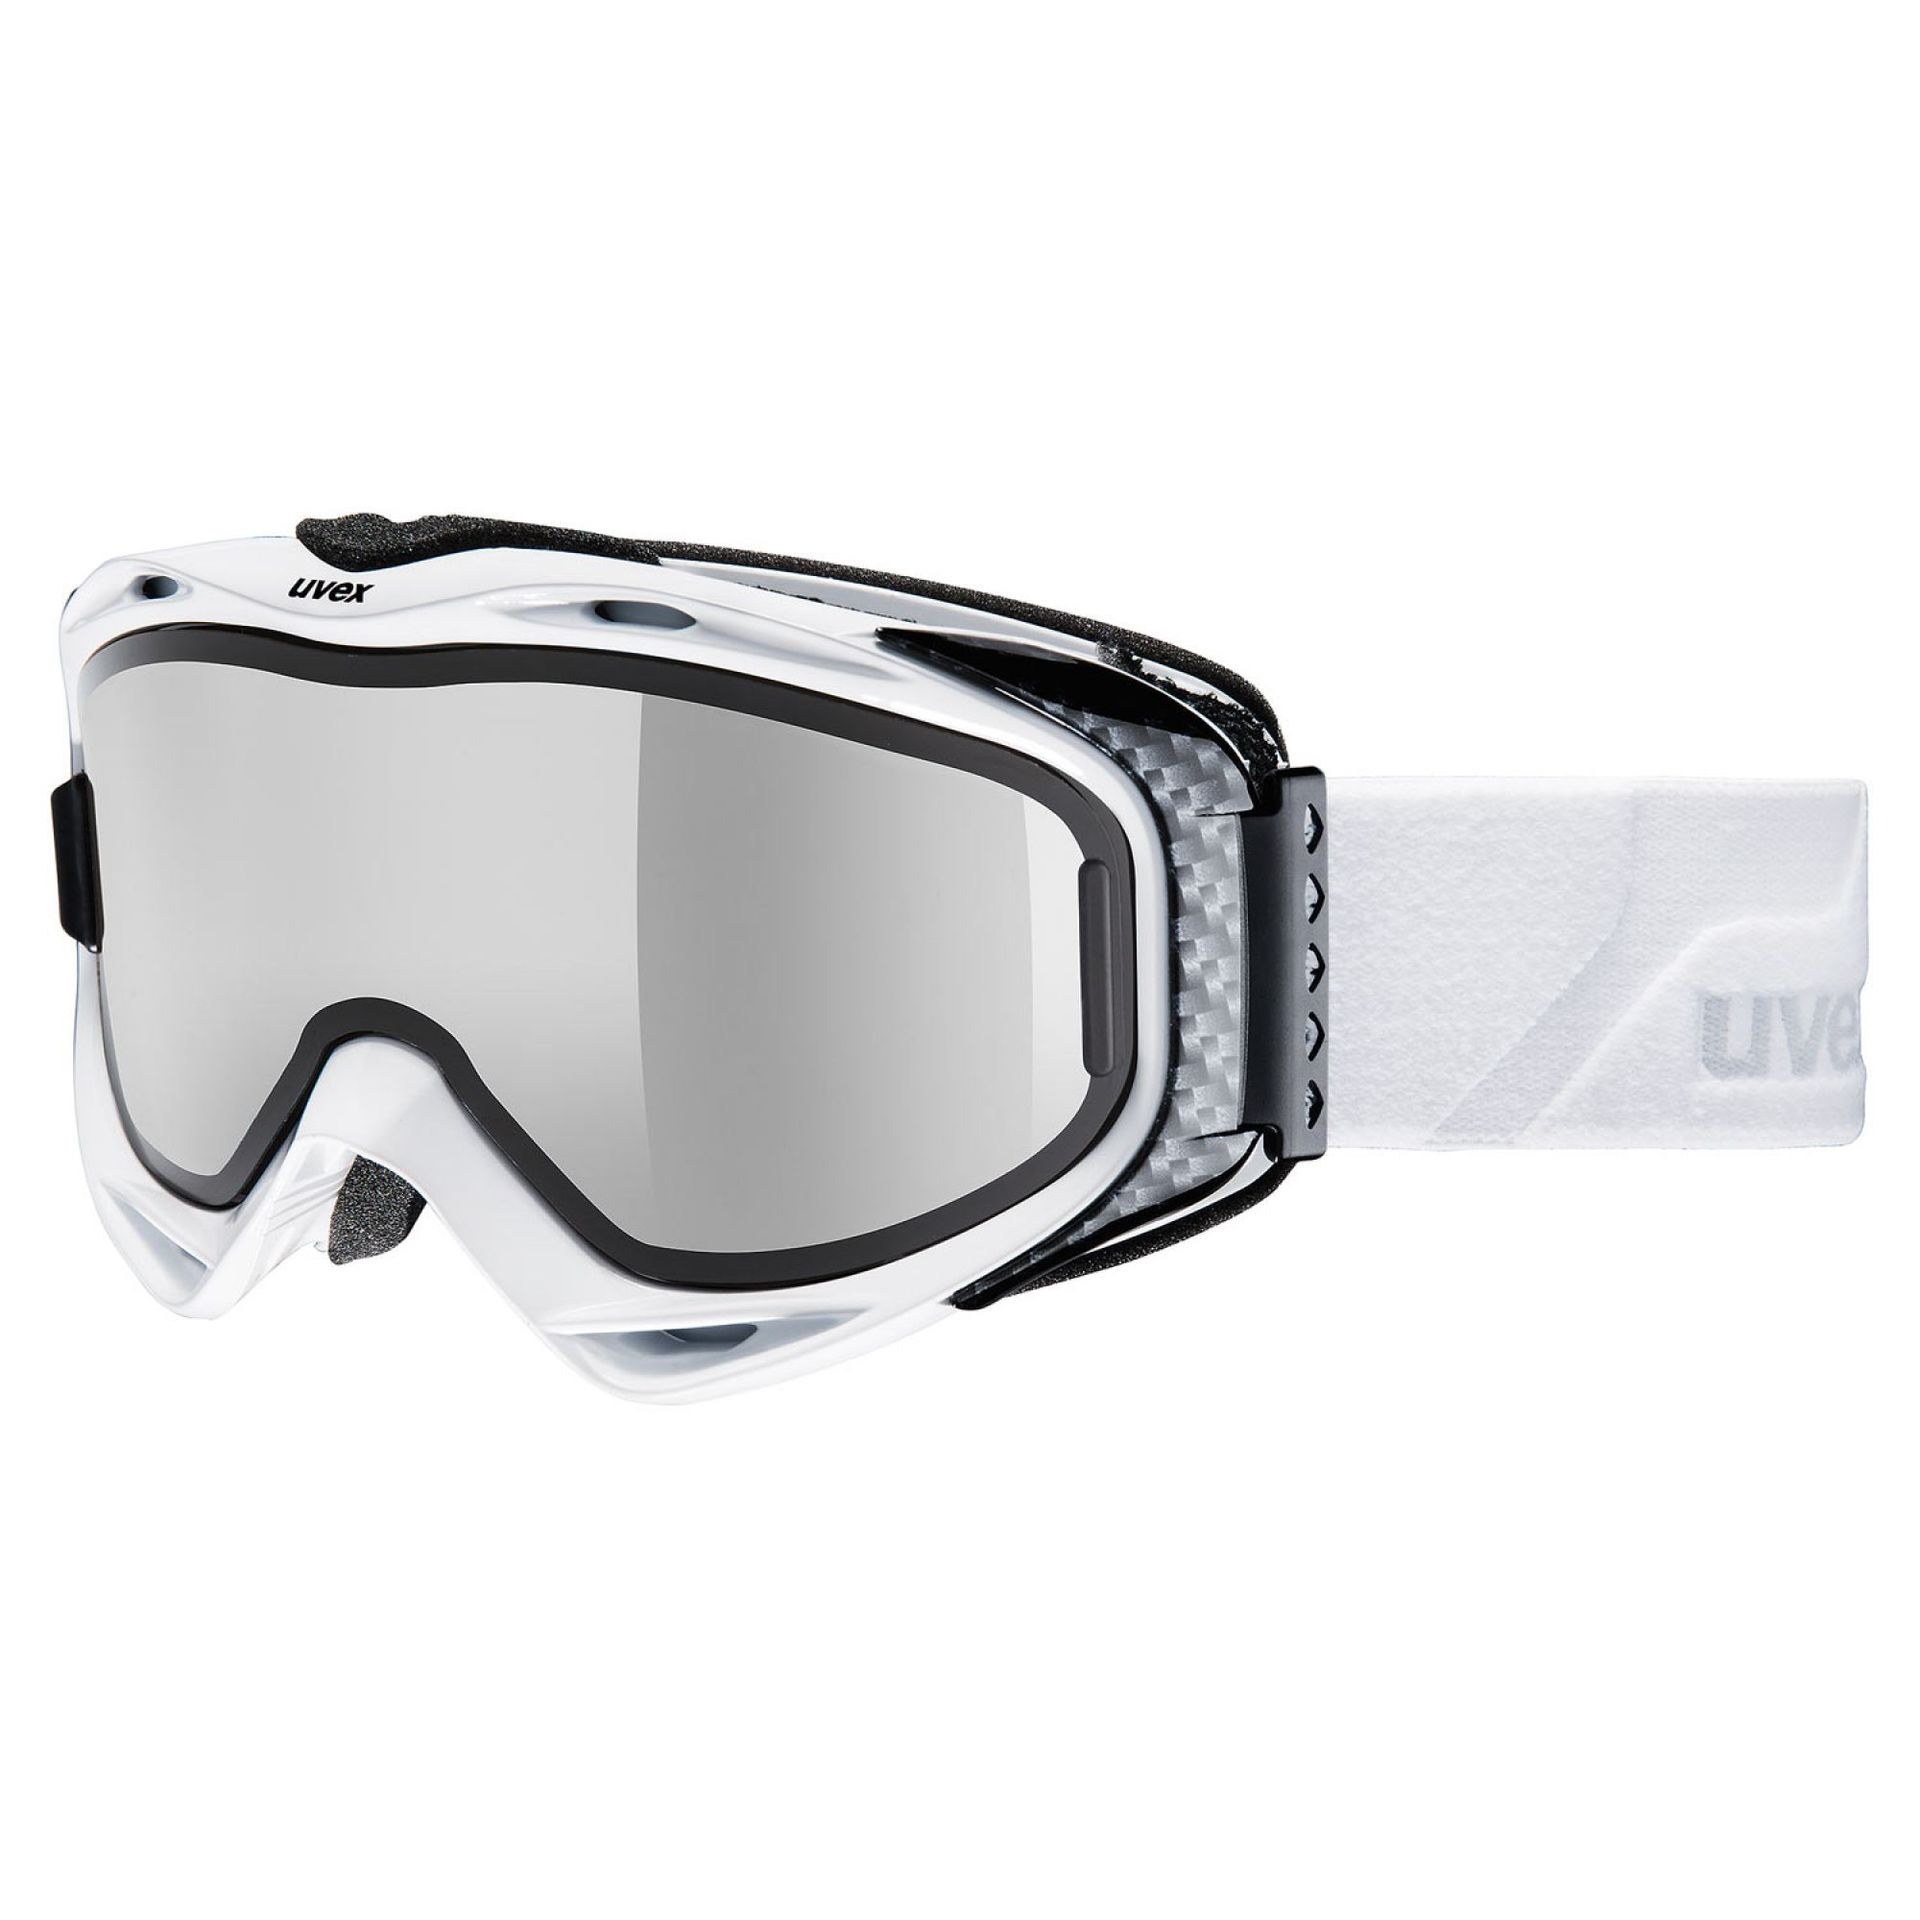 GOGLE UVEX  G.GL 300 TOP WHITE